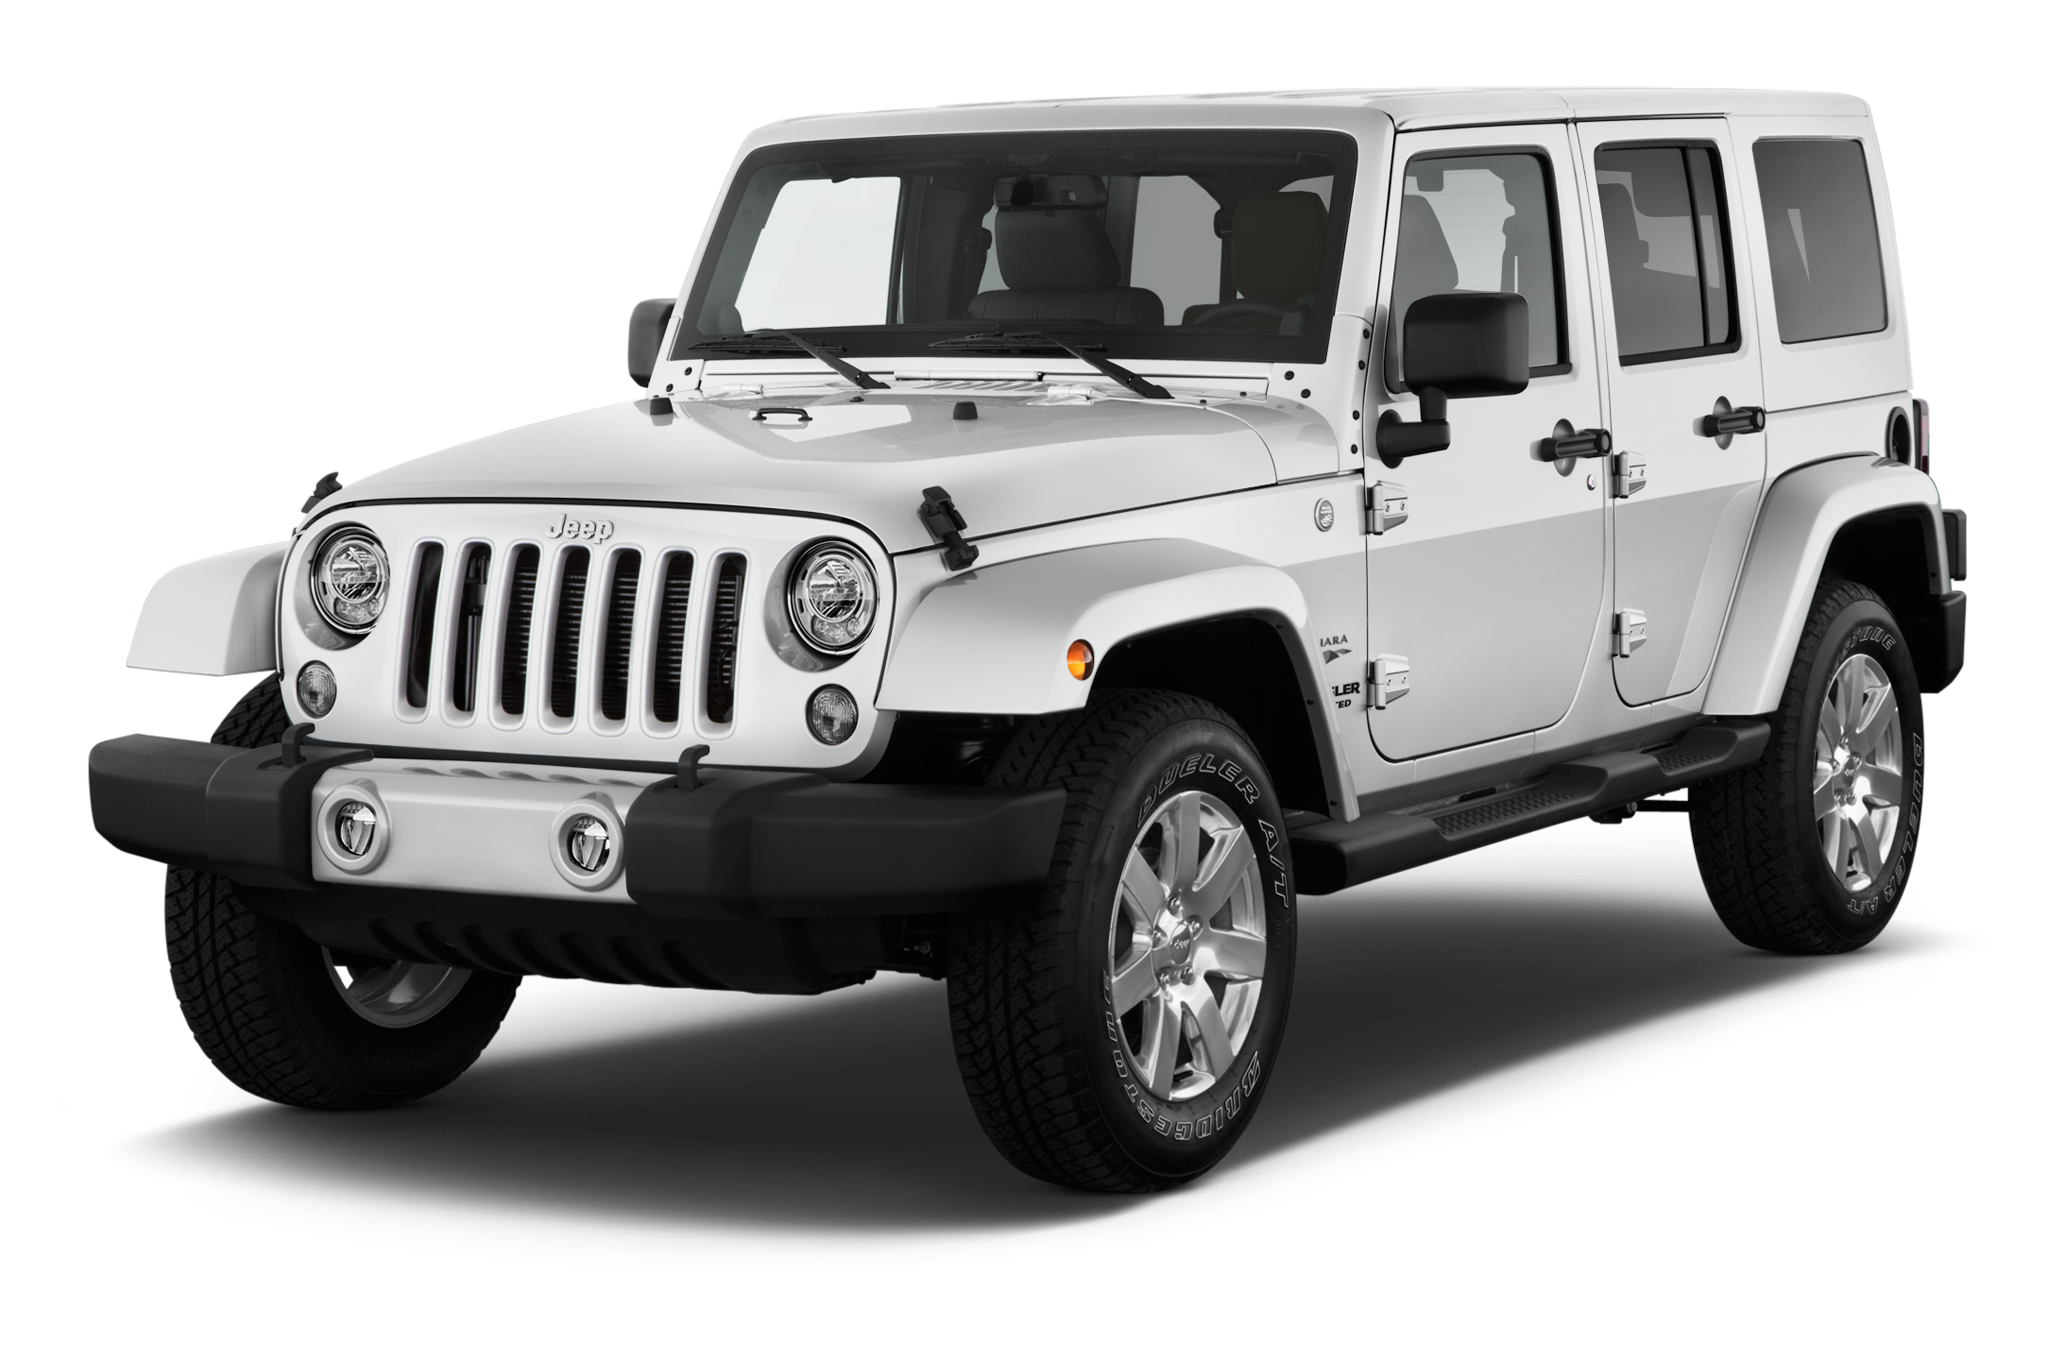 2017 jeep wrangler png. Reviews and rating